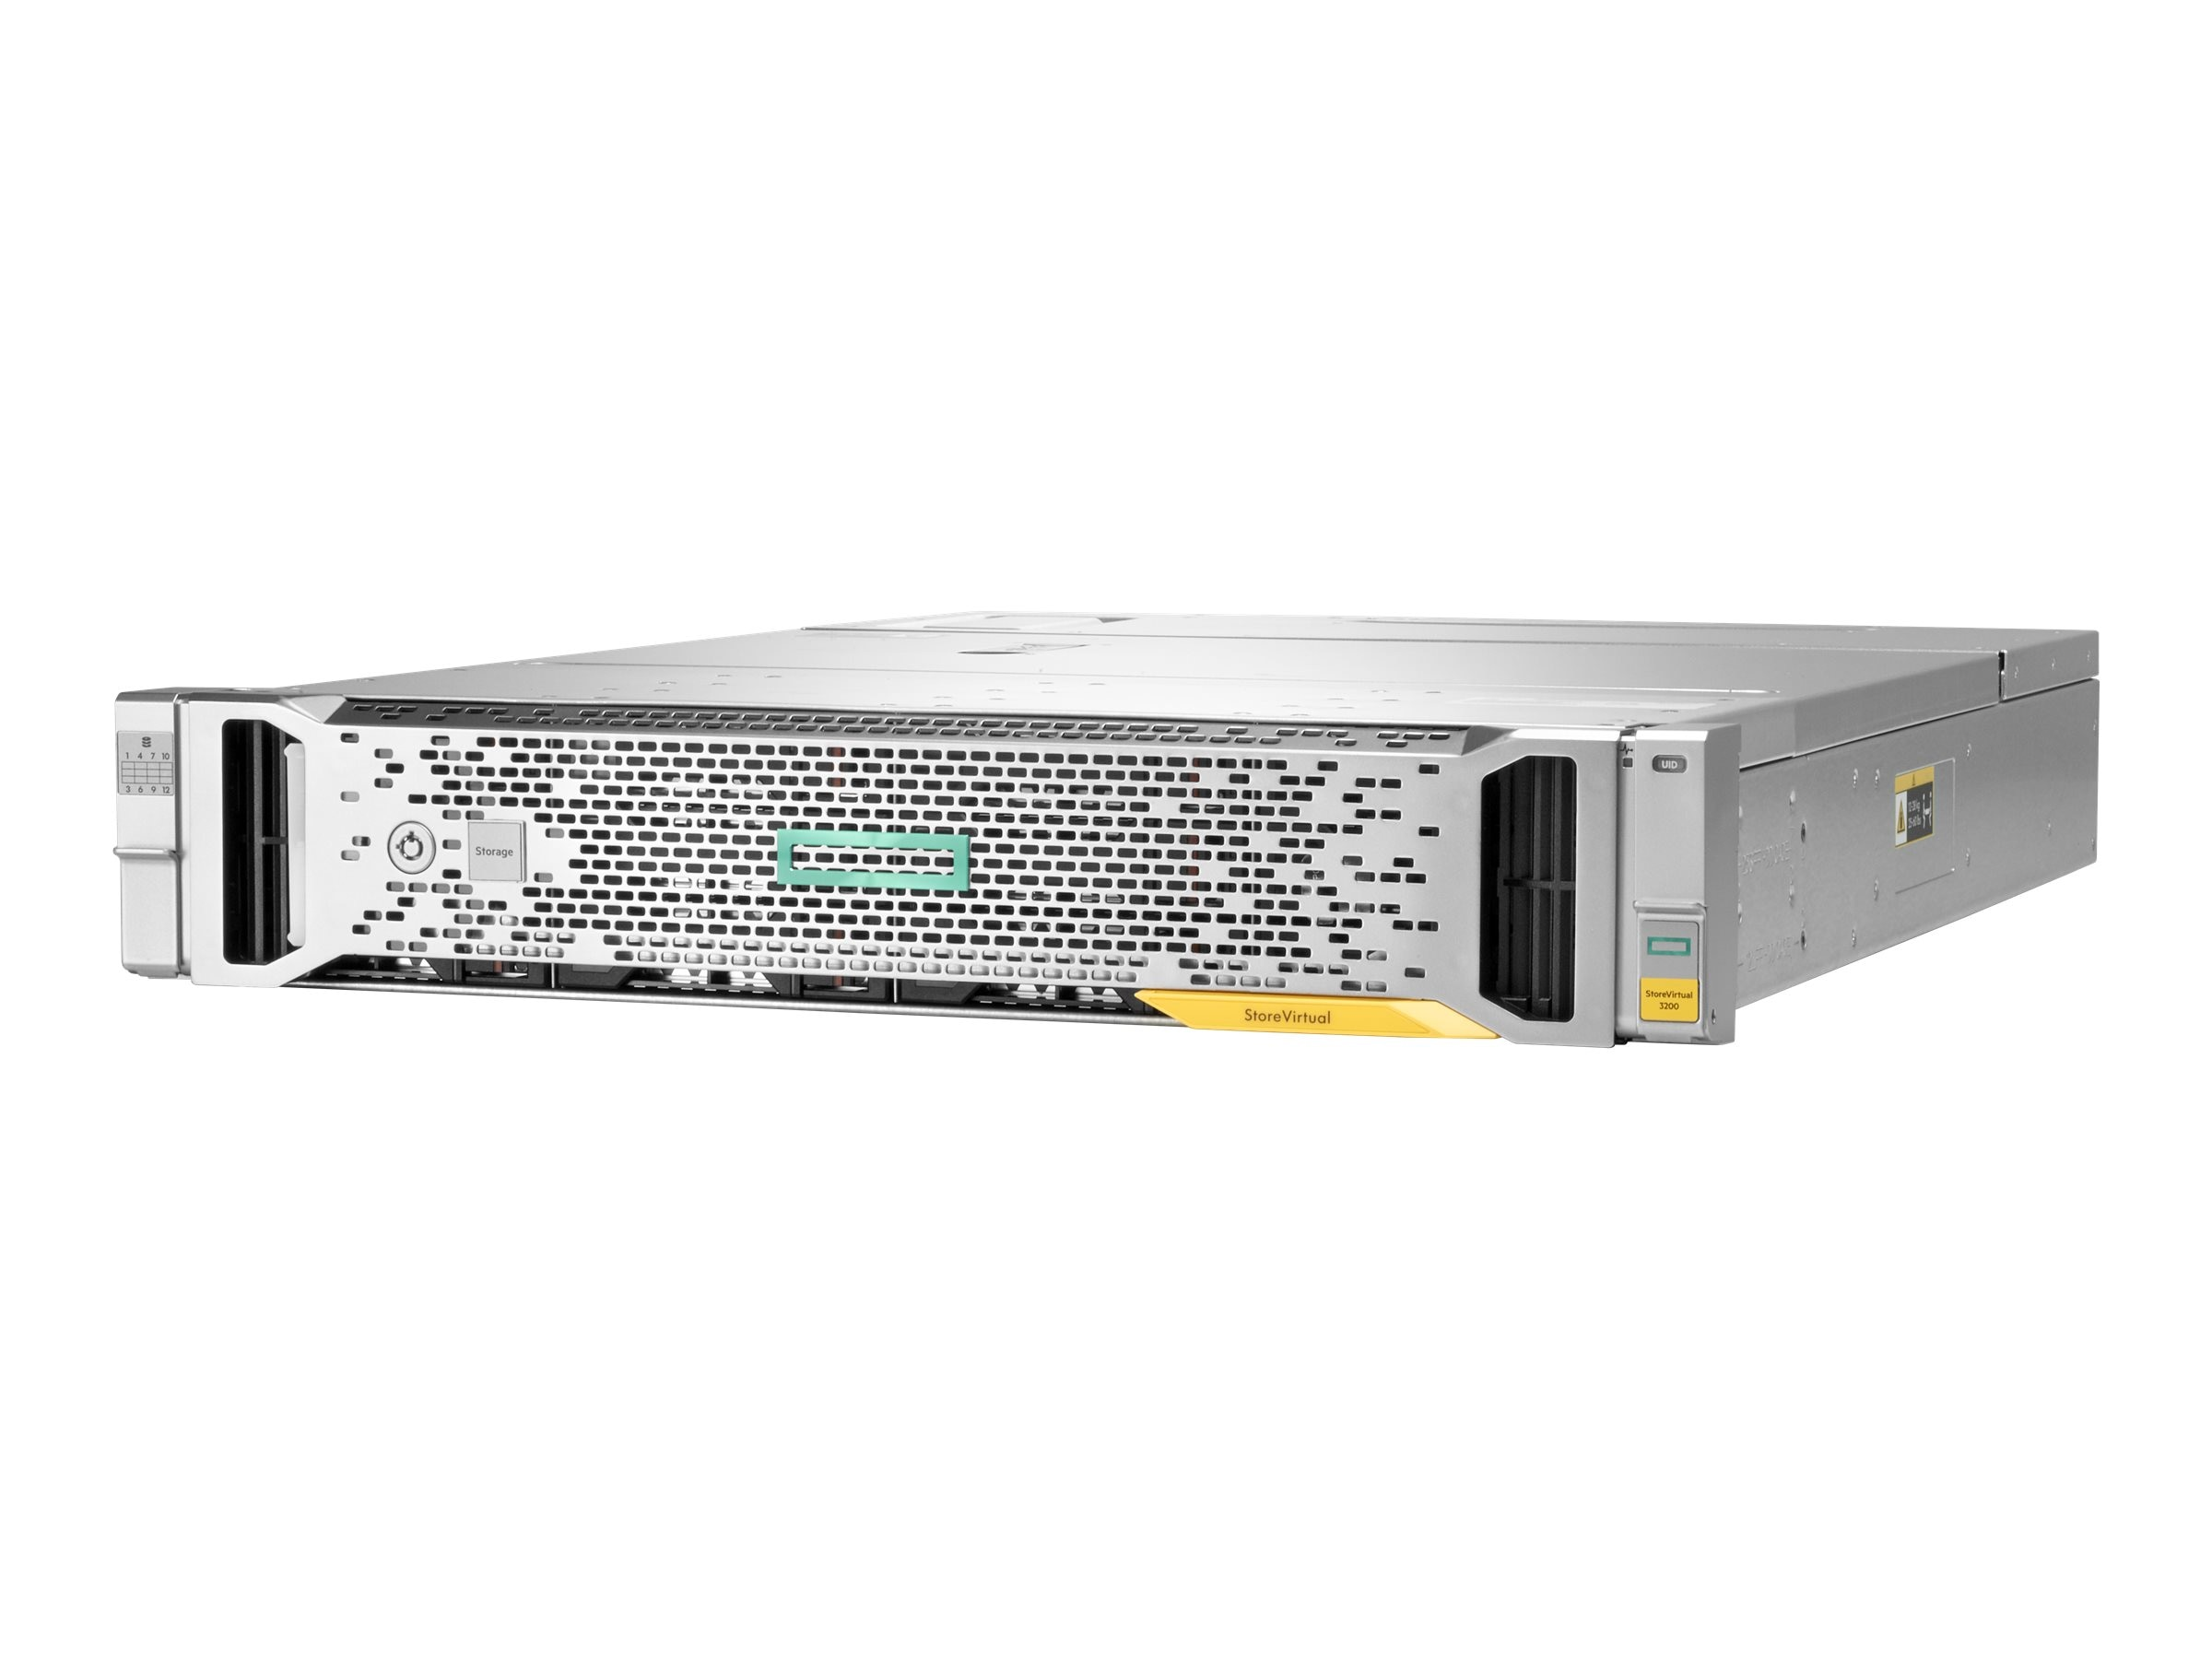 HPE StoreVirtual 3200 4-port 16Gb FC LFF Storage